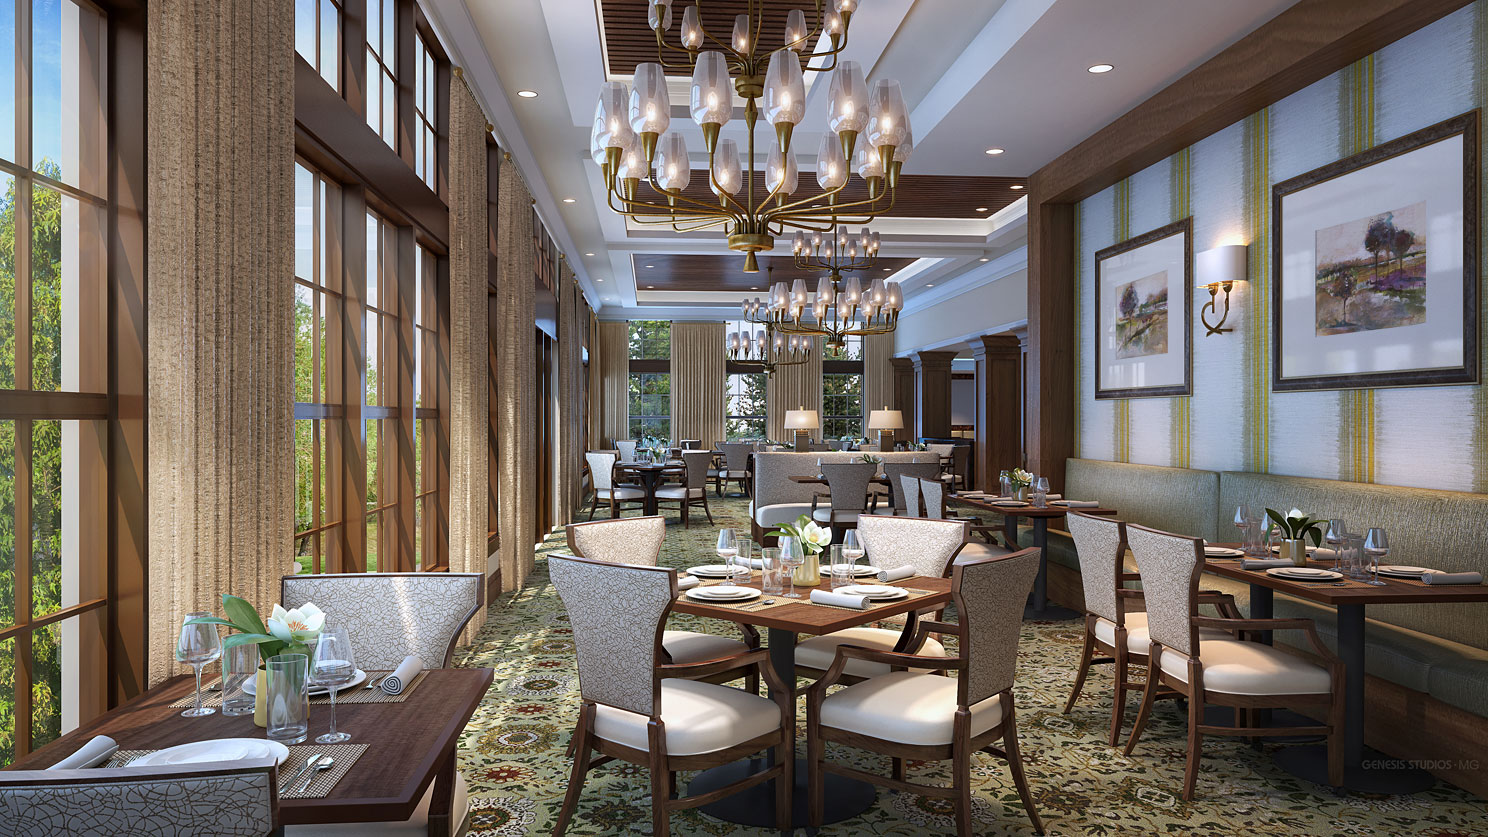 3D Rendering -Digital Photorealistic Architectural Renderings of Snellville Senior Living Dining Room for Senior Lifestyle Corporation